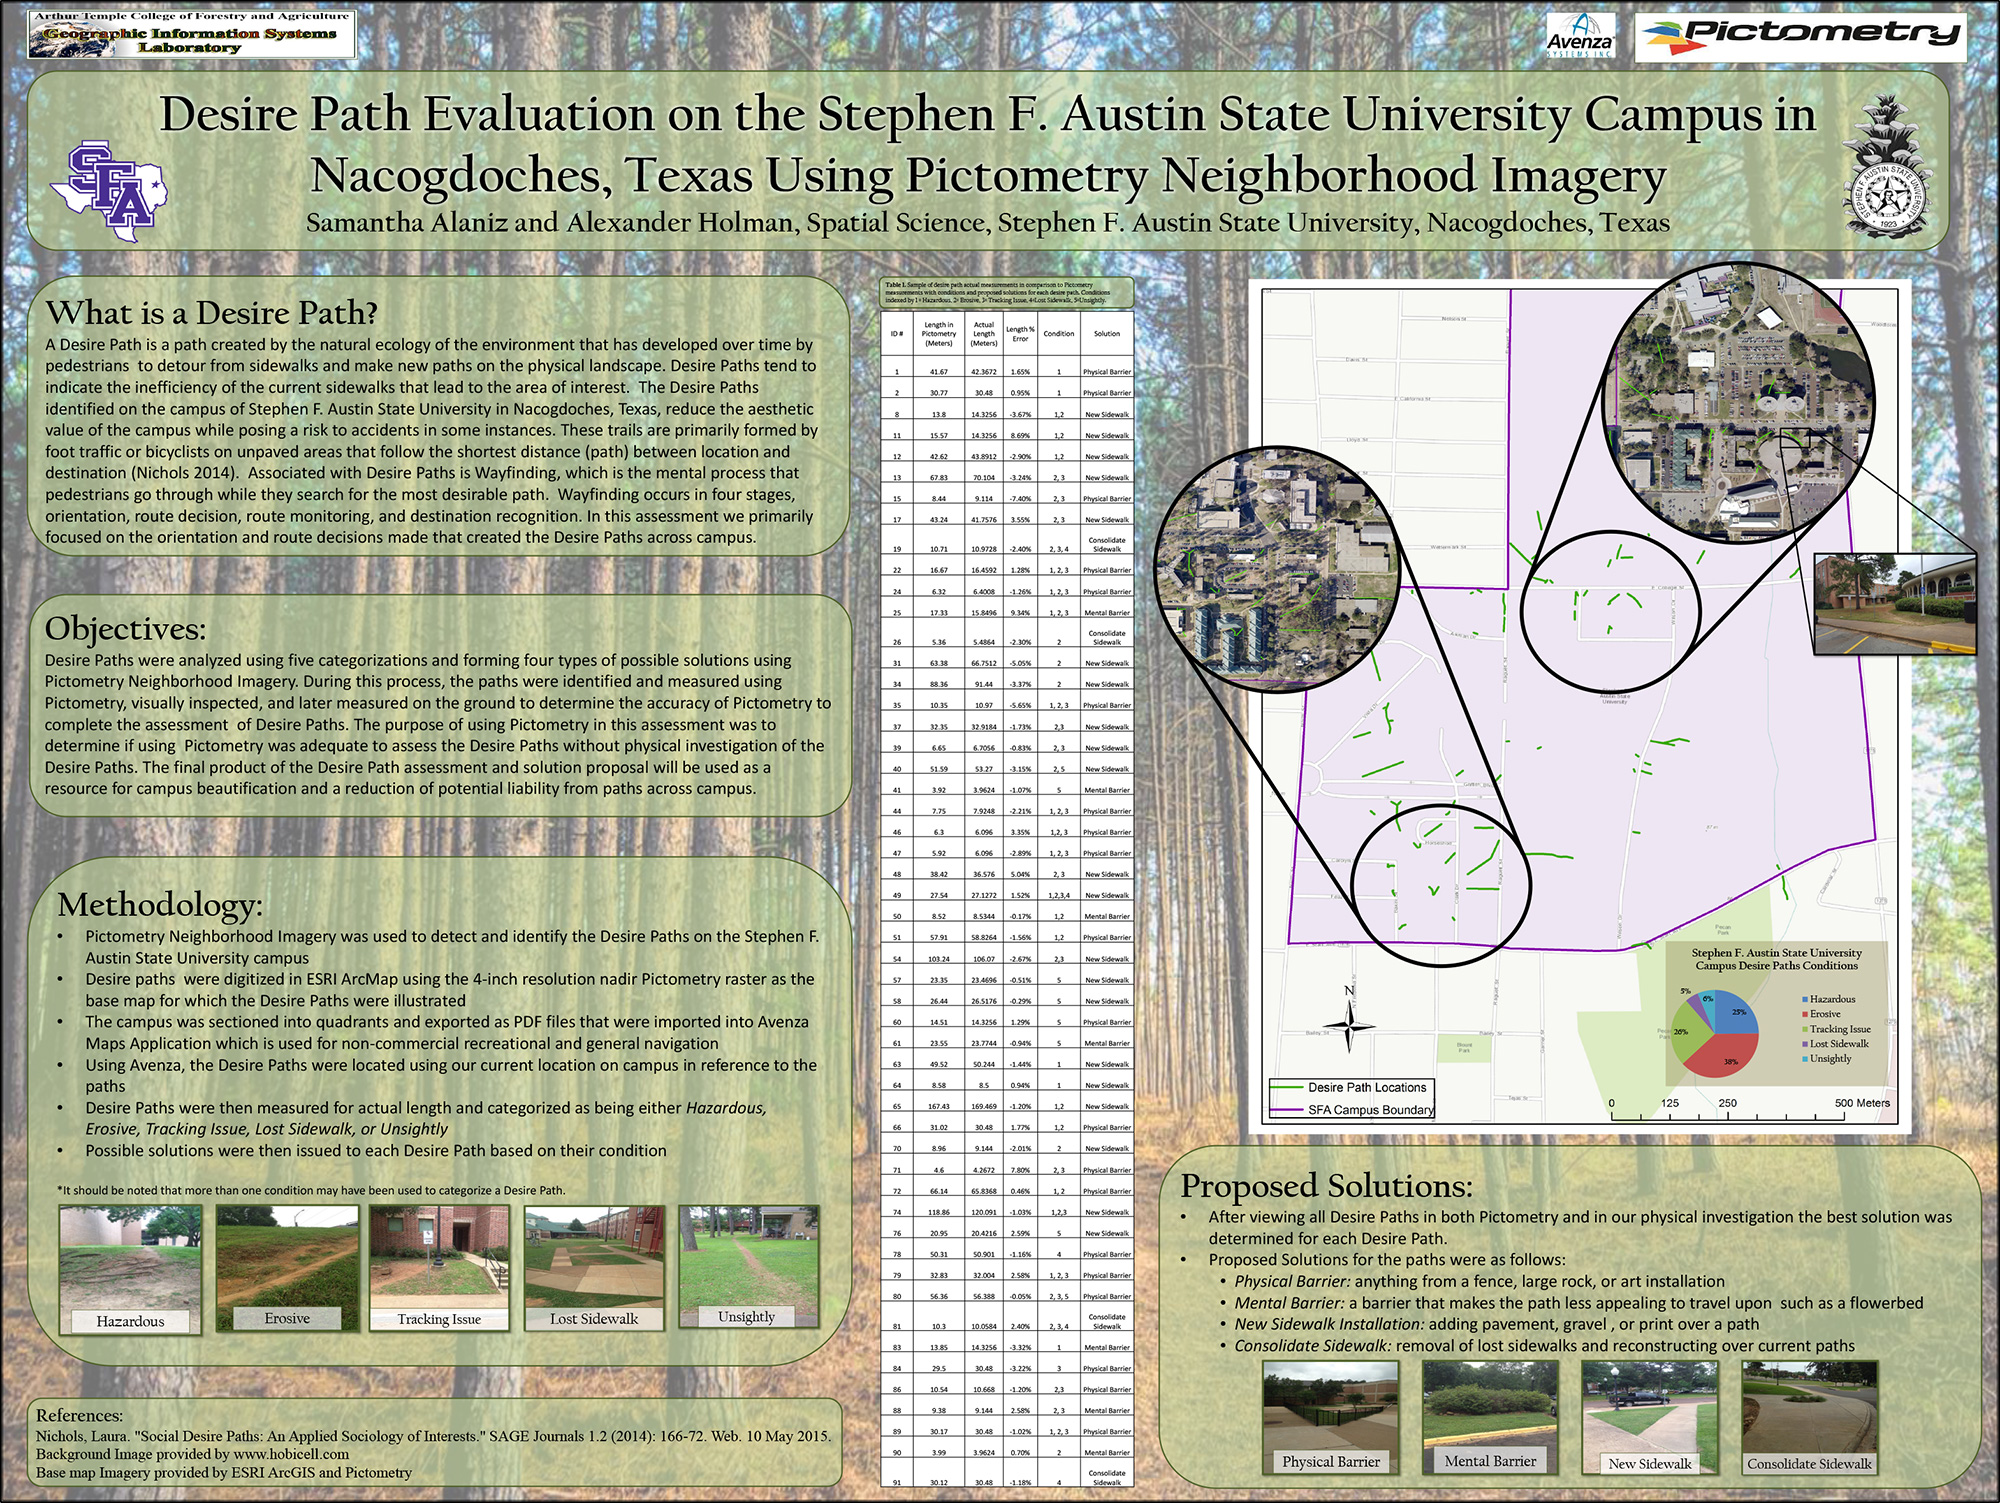 A large preview of the Desire Path Evaluation on a University Campus image